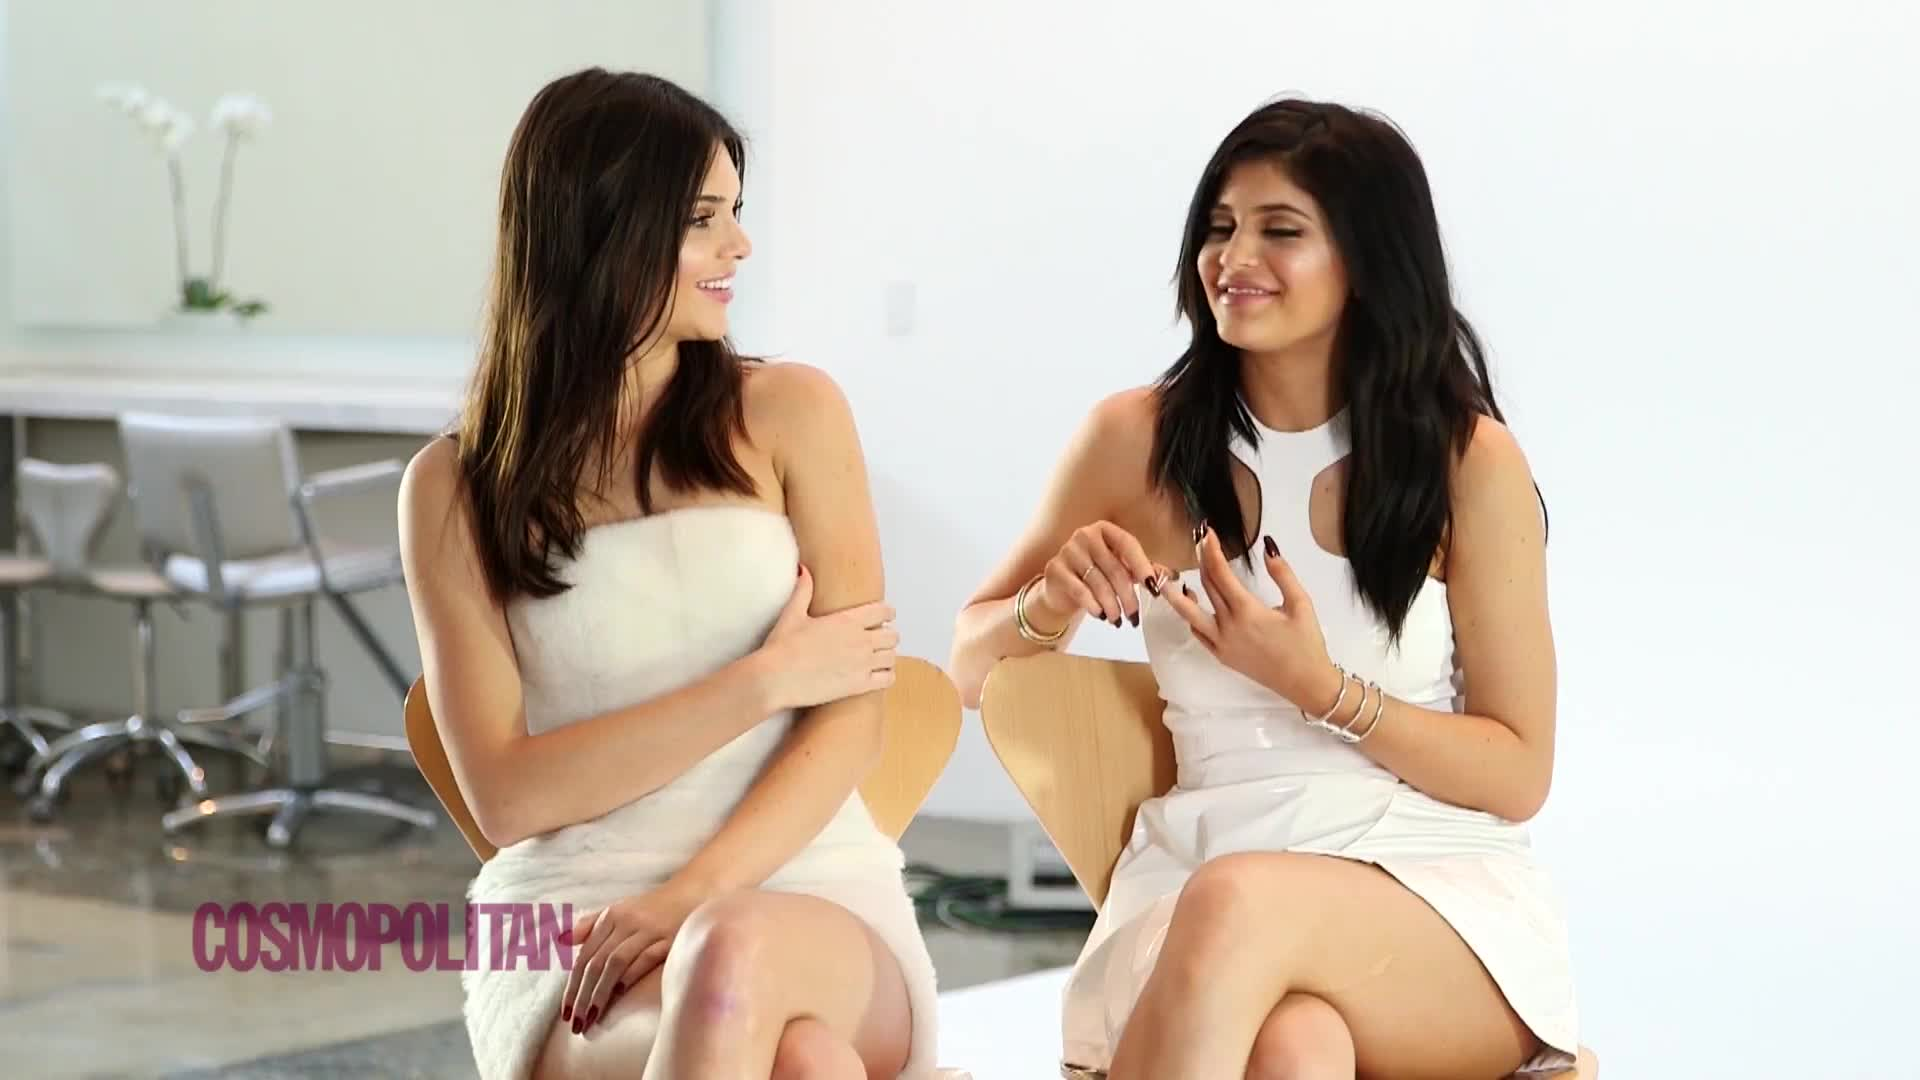 celebrities, celebrity, celebs, jenner, kendall, kendall jenner, kylie, kylie jenner, Kendall Jenner & Kylie Jenner - (10.20.15) Kardashian Konfessions: Their Most Embarrassing Moments Cosmopolitan GIFs